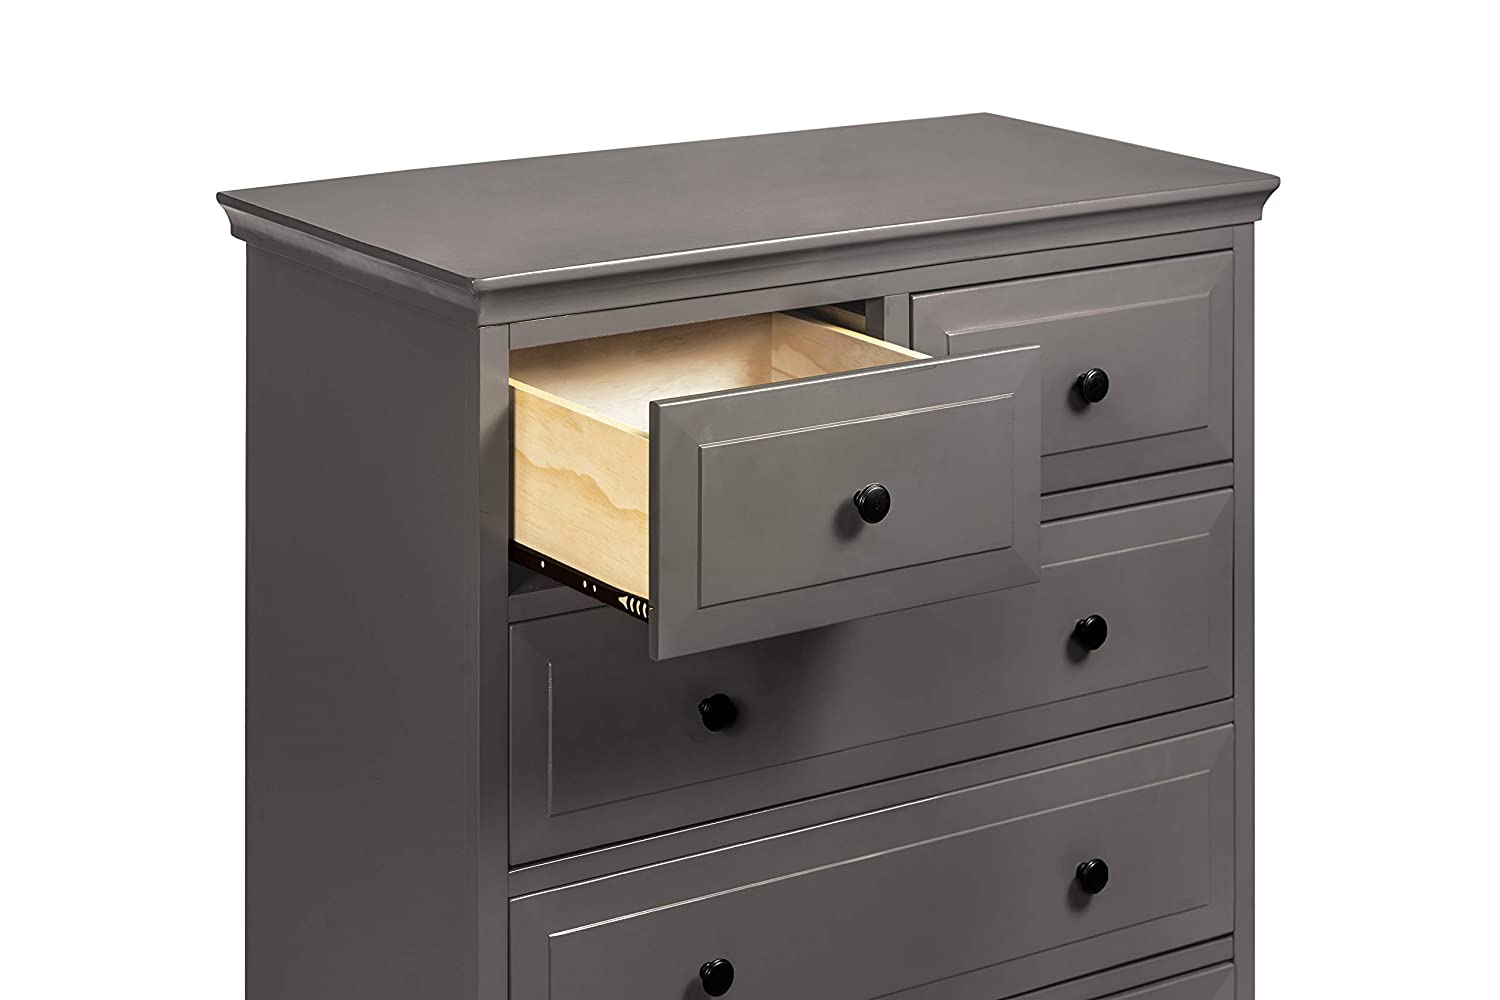 Amazon.com: DaVinci Firma 4-Drawer Tall Dresser en acabado ...